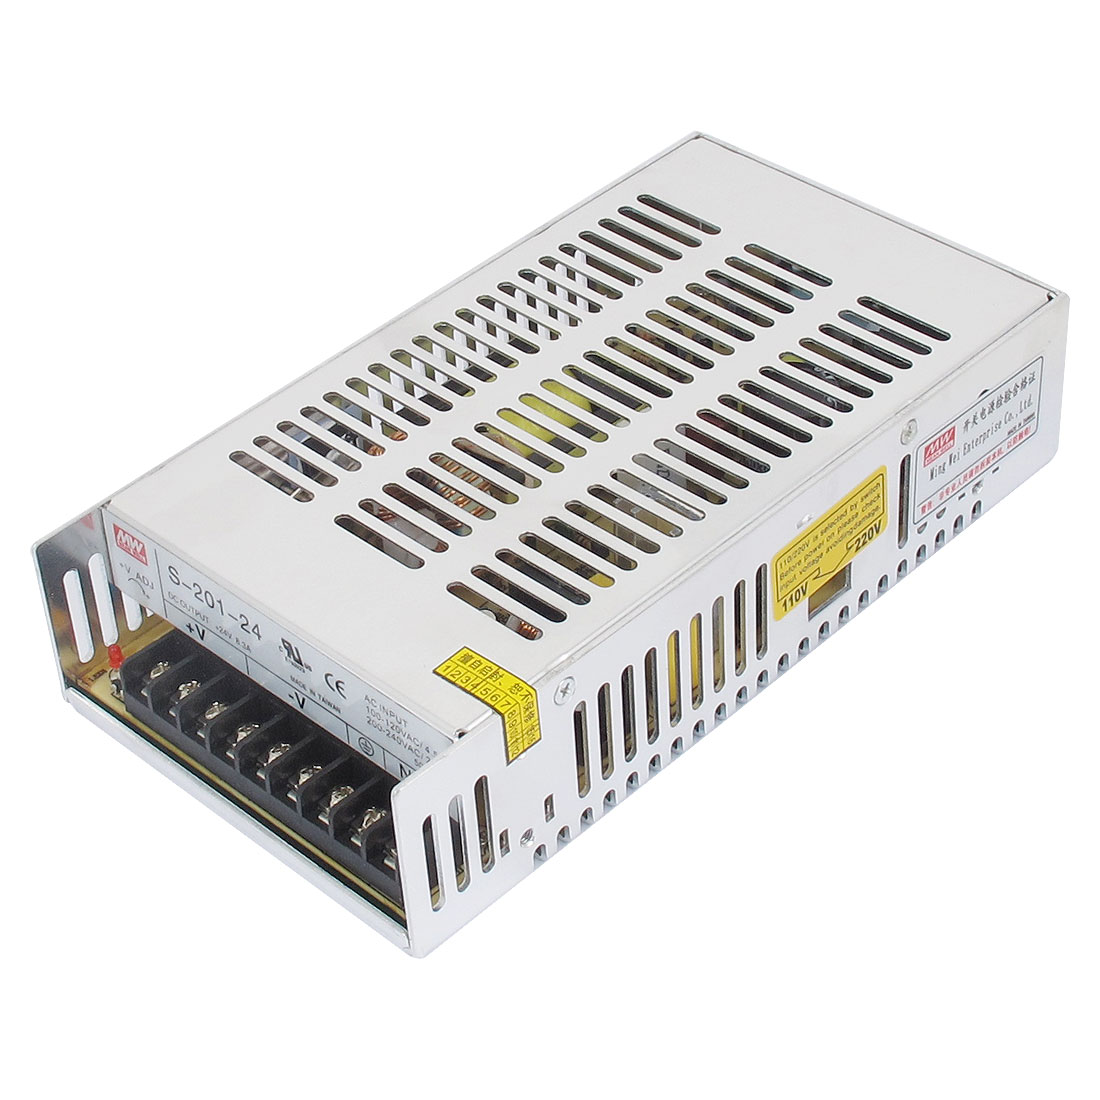 AC 110/220V DC 24V 8.3A 200W Triple Output Switching Power Supply Driver for LED Strip Light